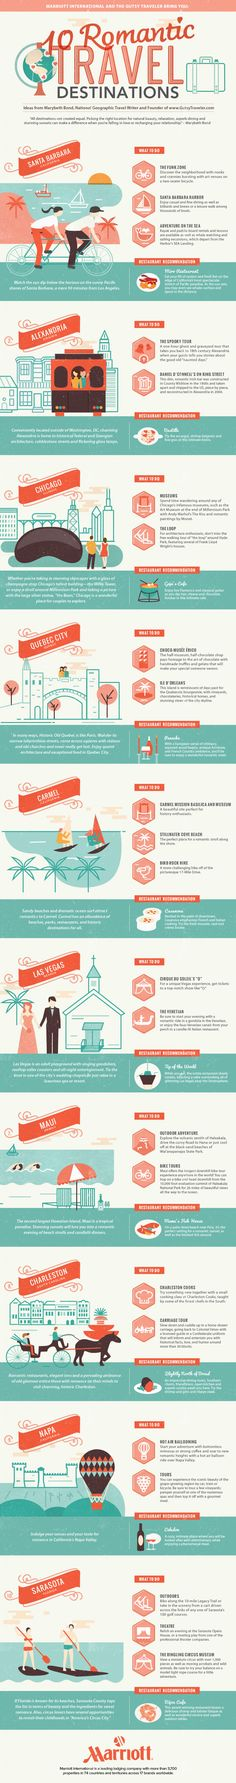 Pinning this because alexandria made the list. Ten Romantic Travel Destinations #Infographic #infografía